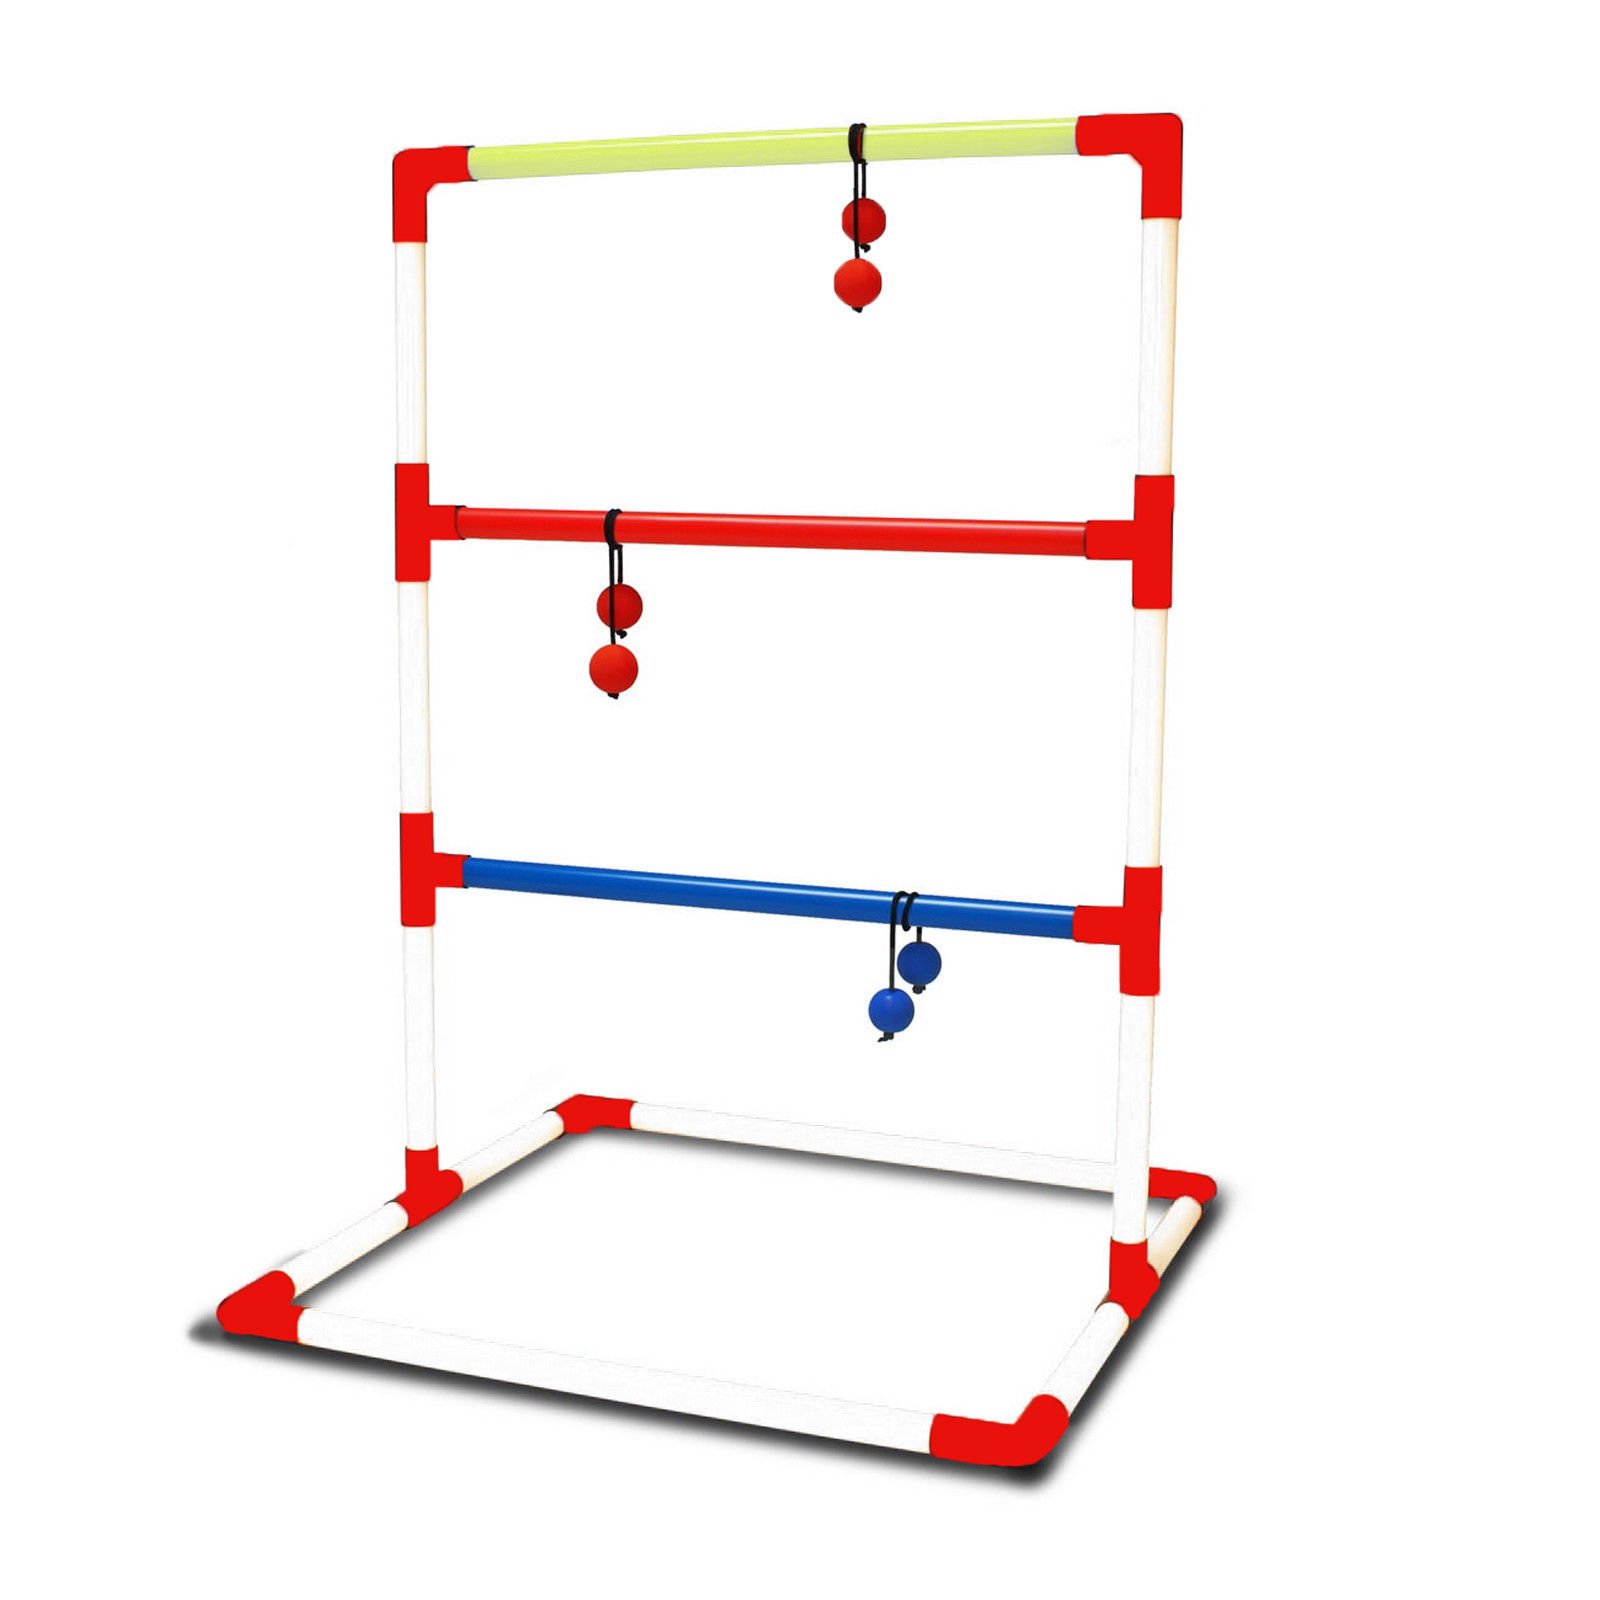 Ladder Golf Ladder Ball Toss Outdoor Yard Tournament Game by